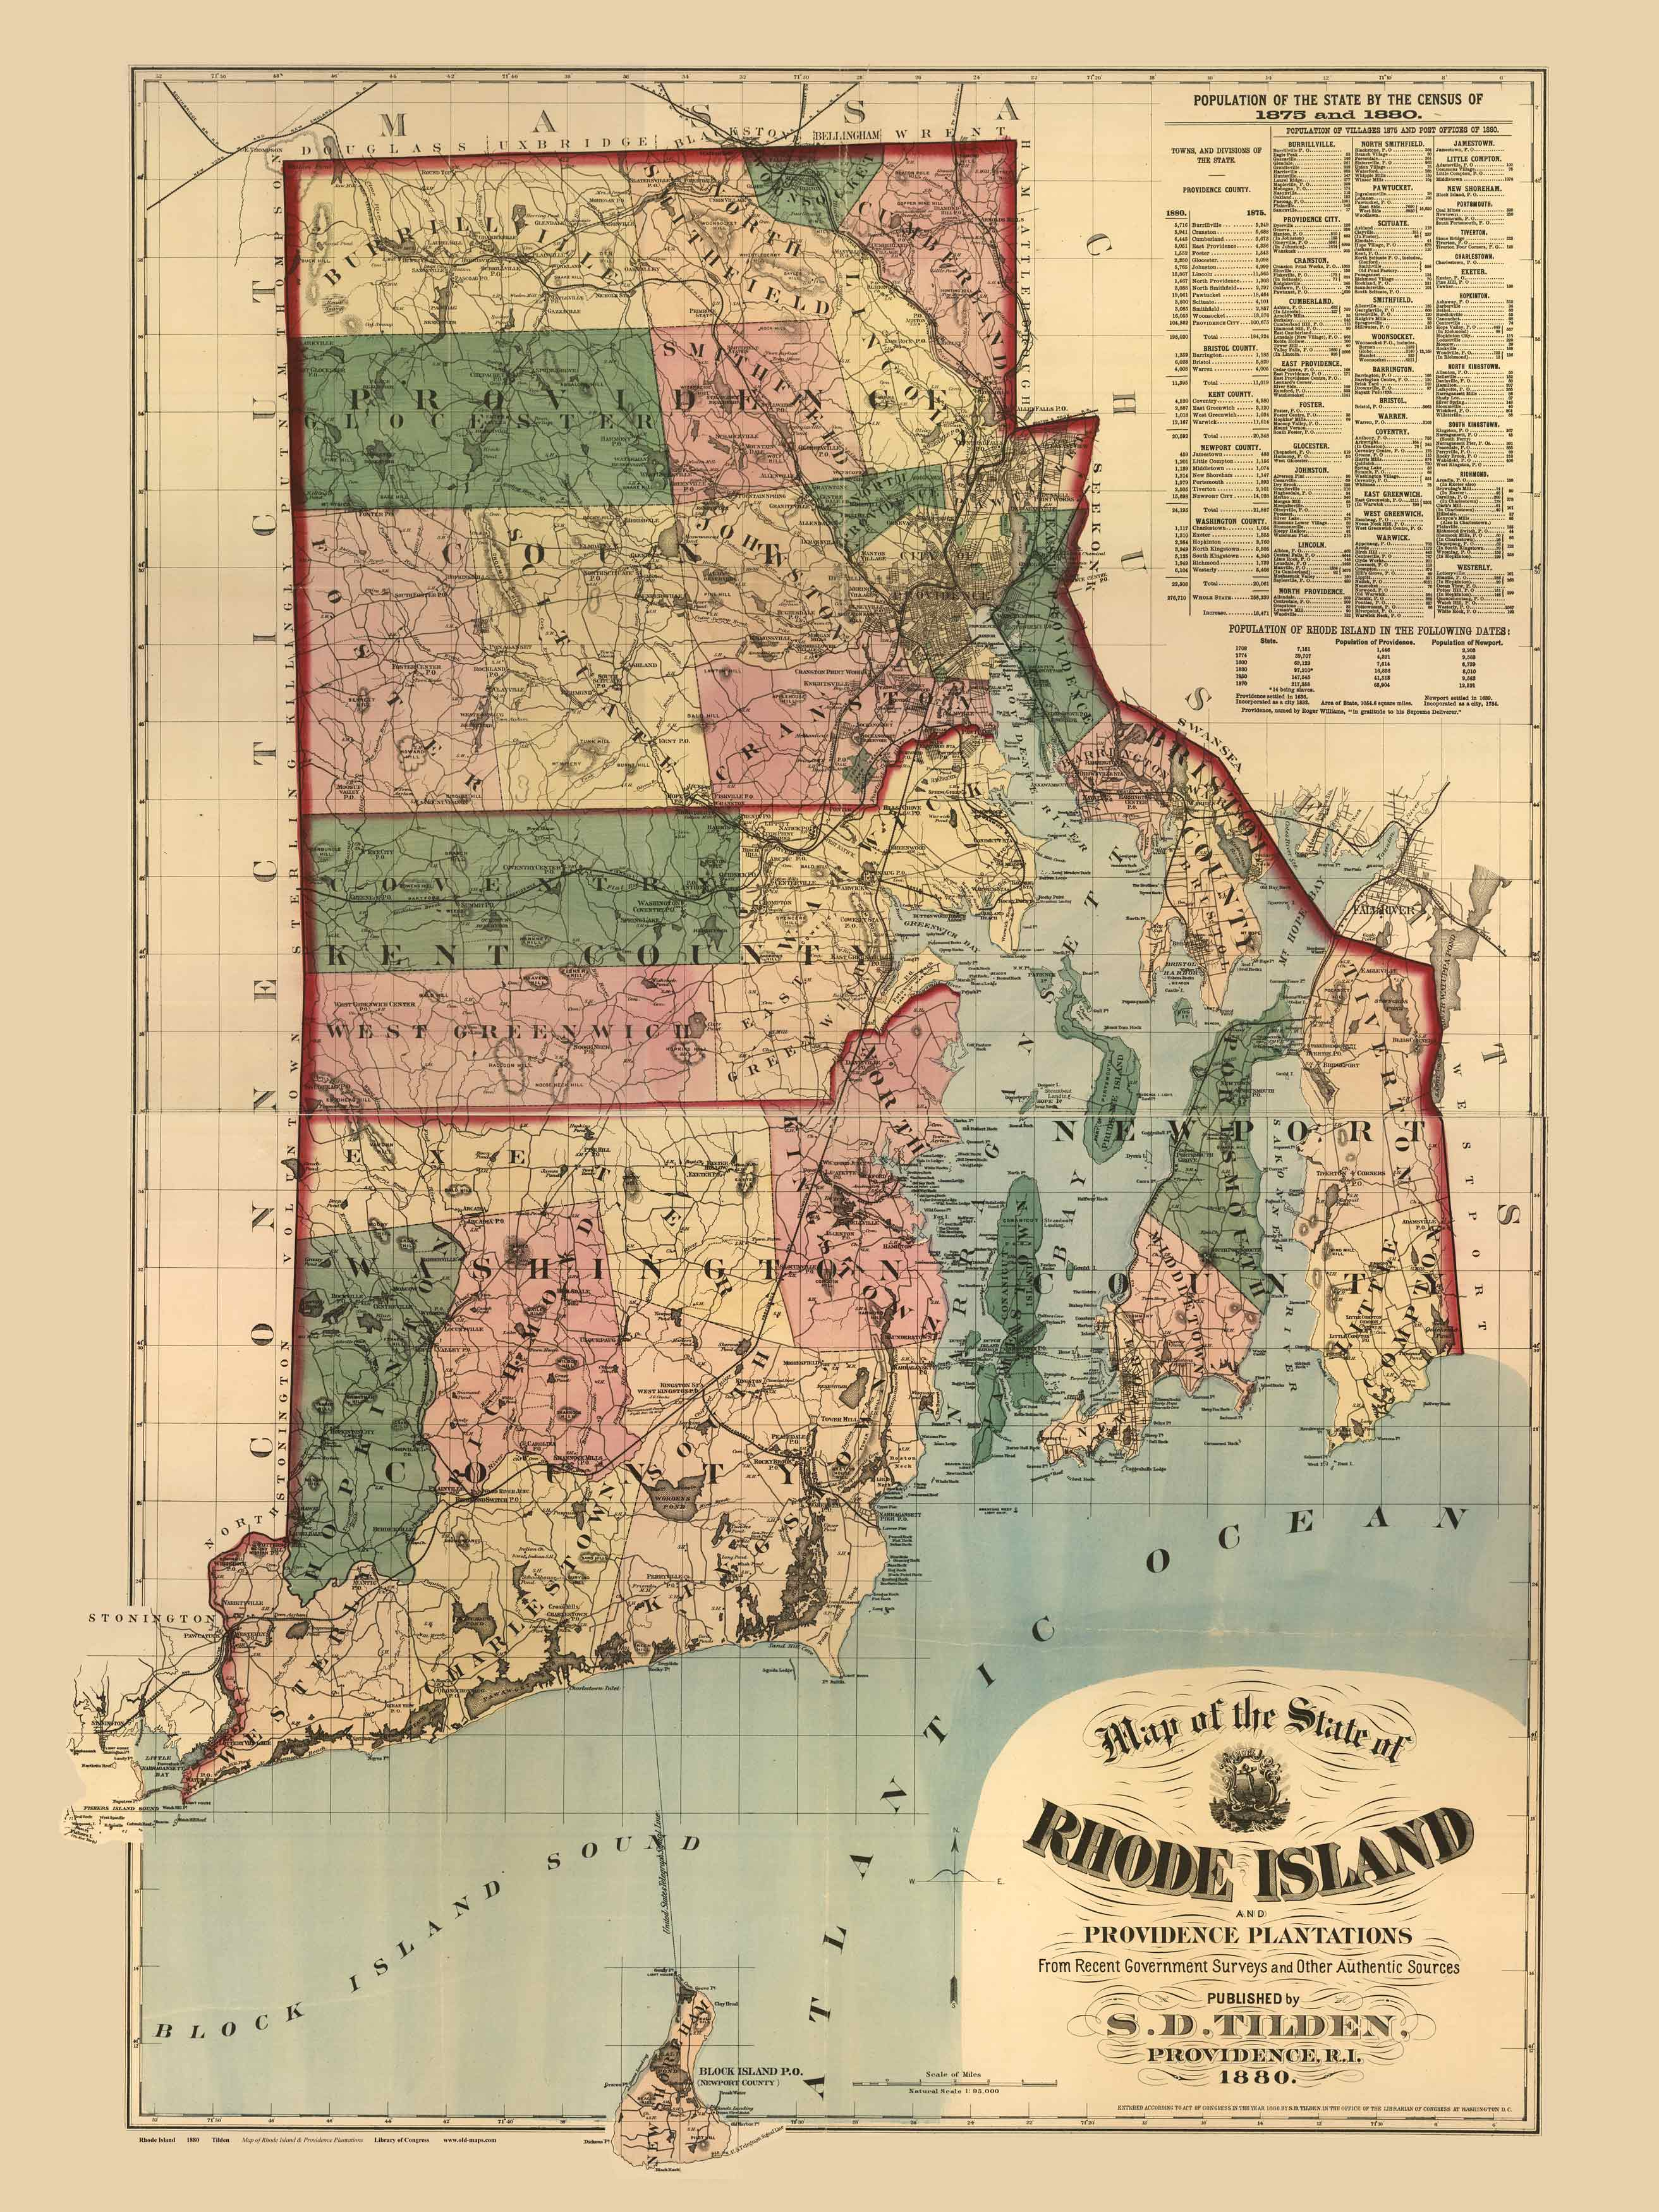 Rhode island 1880 tilden old maps click to view a large version of this print publicscrutiny Choice Image